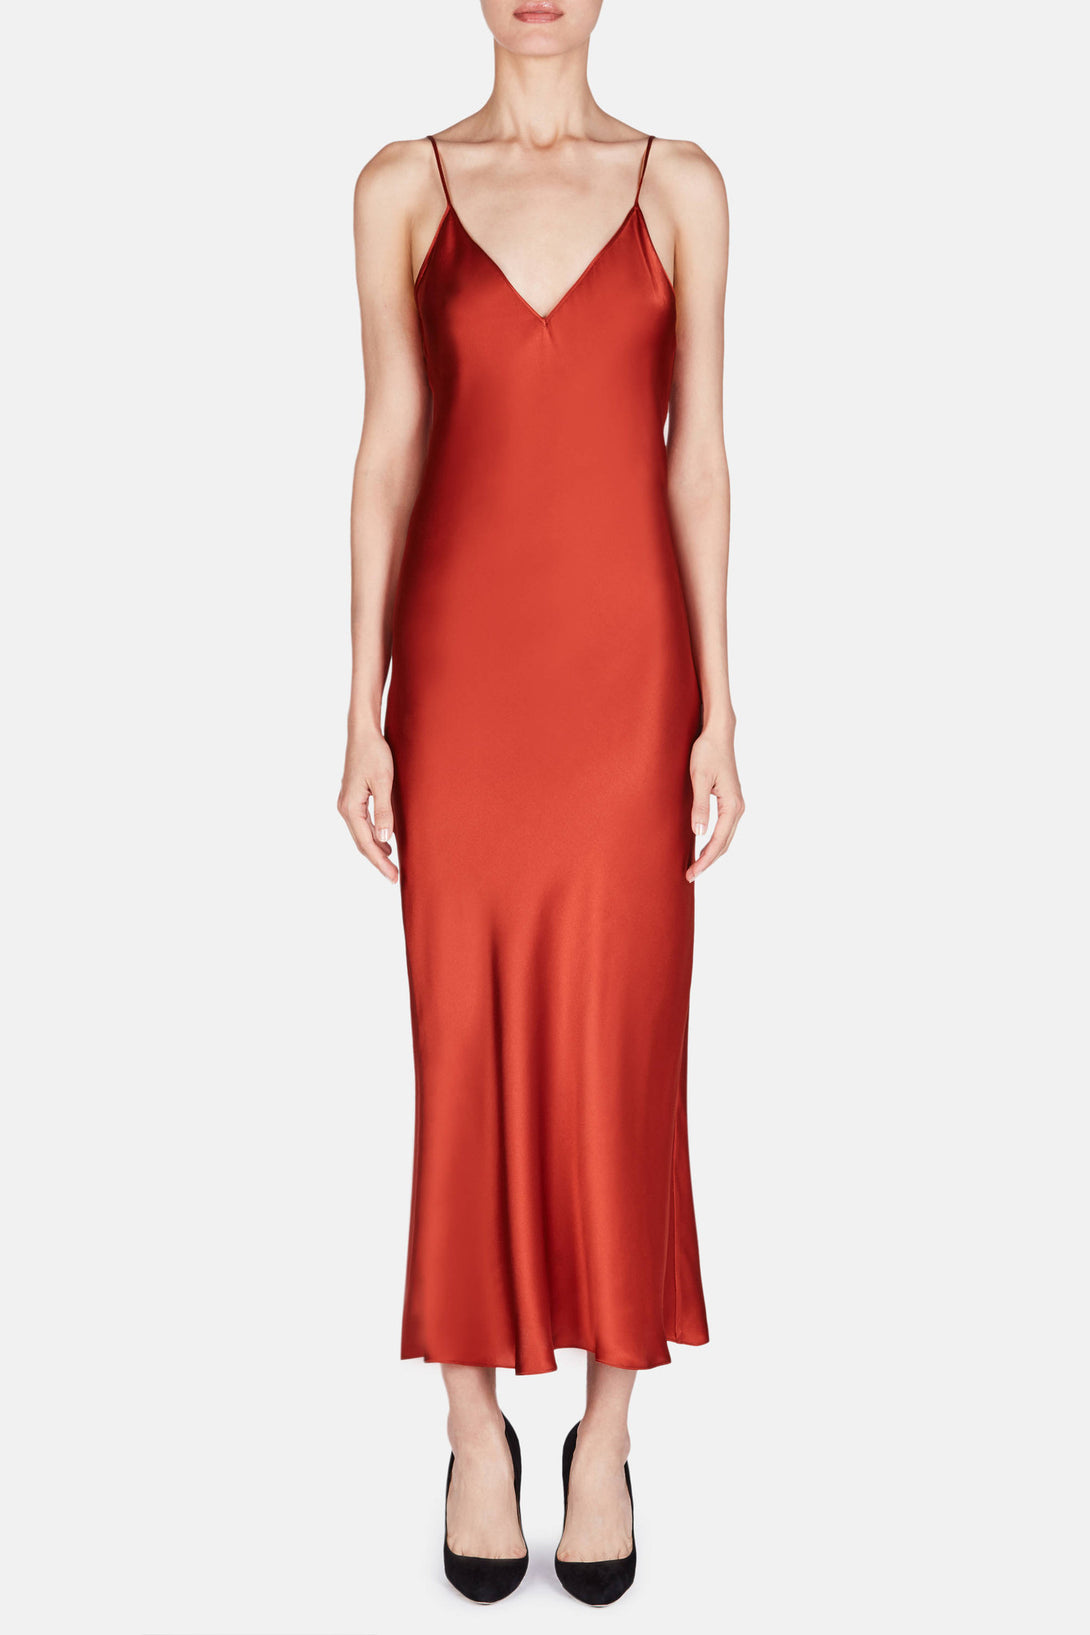 Dress 15 Bias Slip Dress - Titian